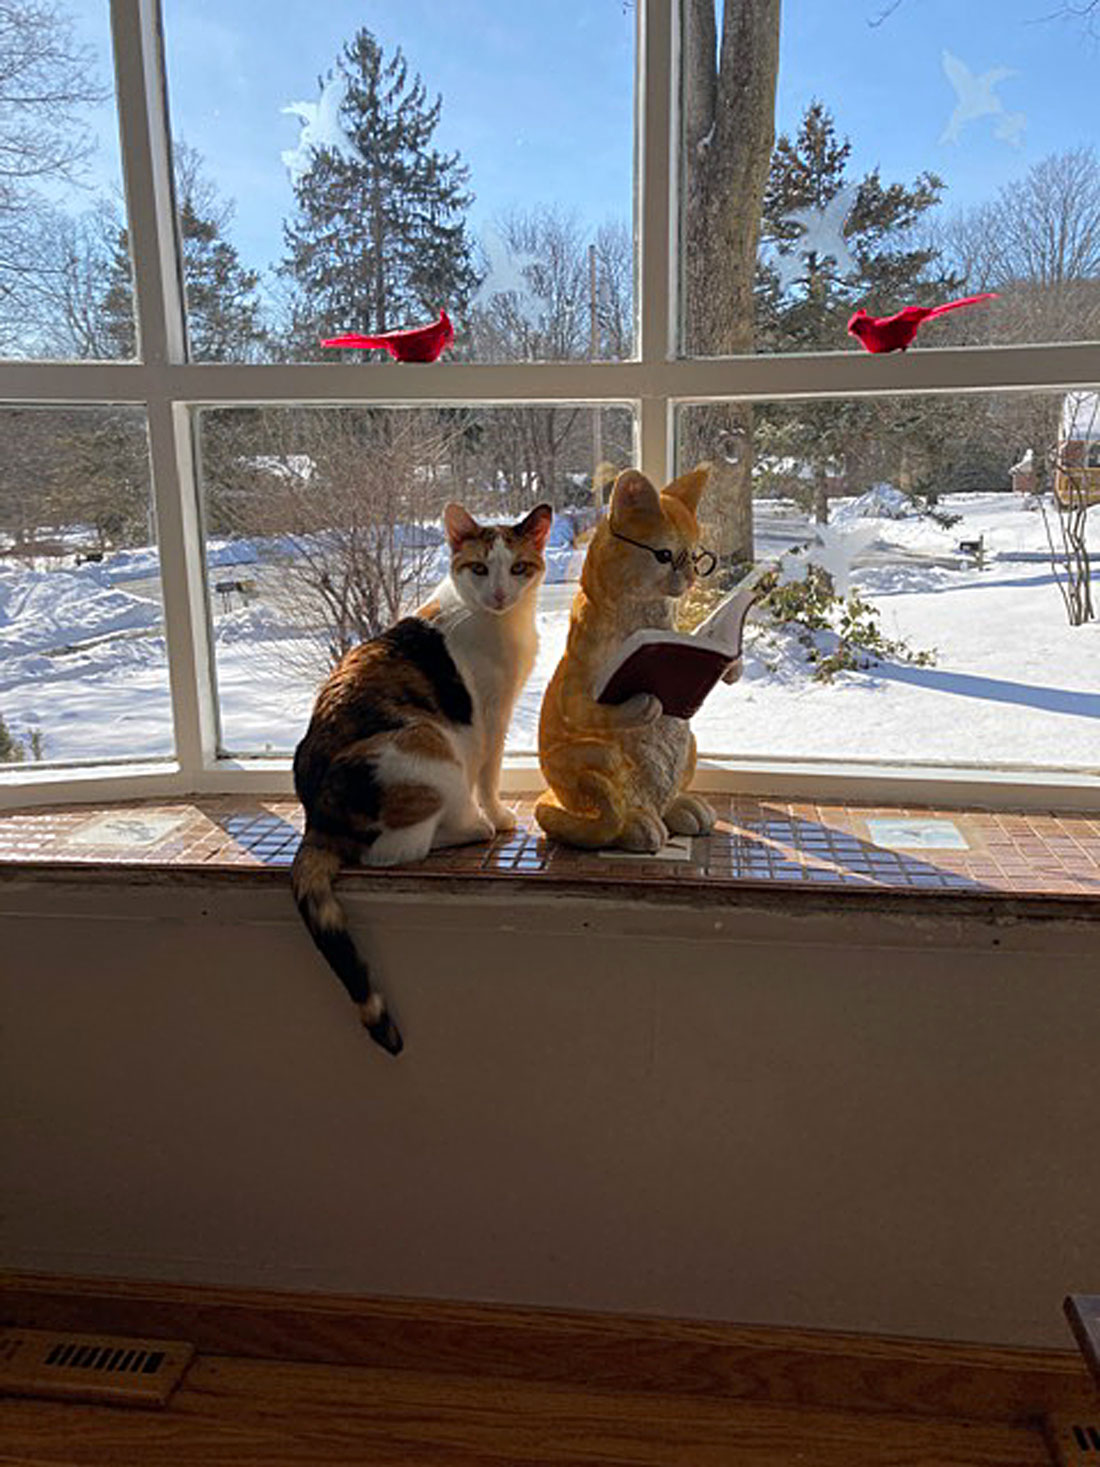 """This is our rescue, Molly, who has been a wonderful addition to our family! She is three years old and has taken a liking to reading in the window with her """"friend"""", a wonderful ceramic cat statue! – Heloise."""